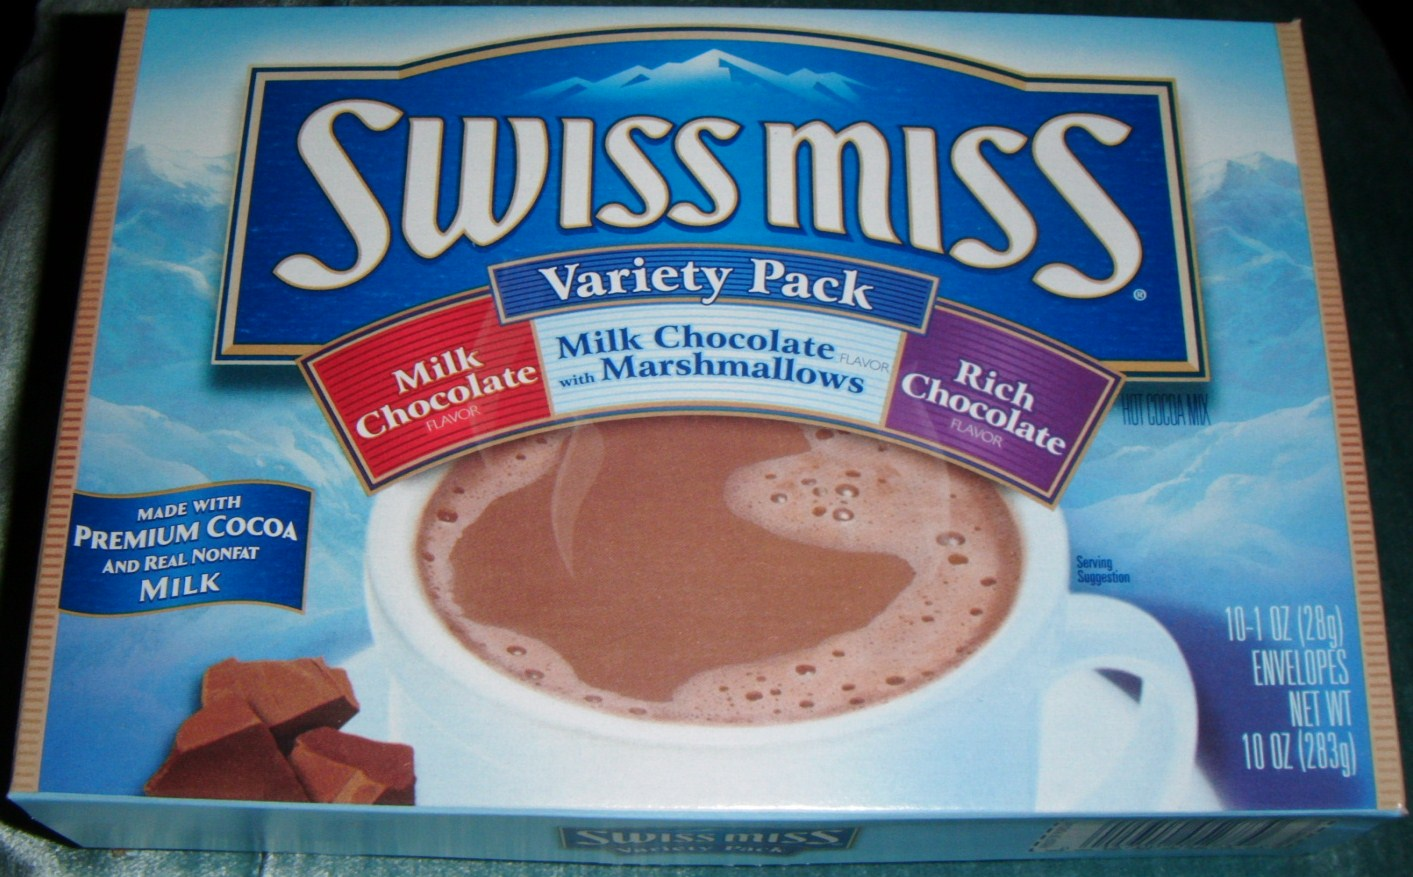 Foodstuff Finds Swiss Miss Hot Chocolate Variety Pack